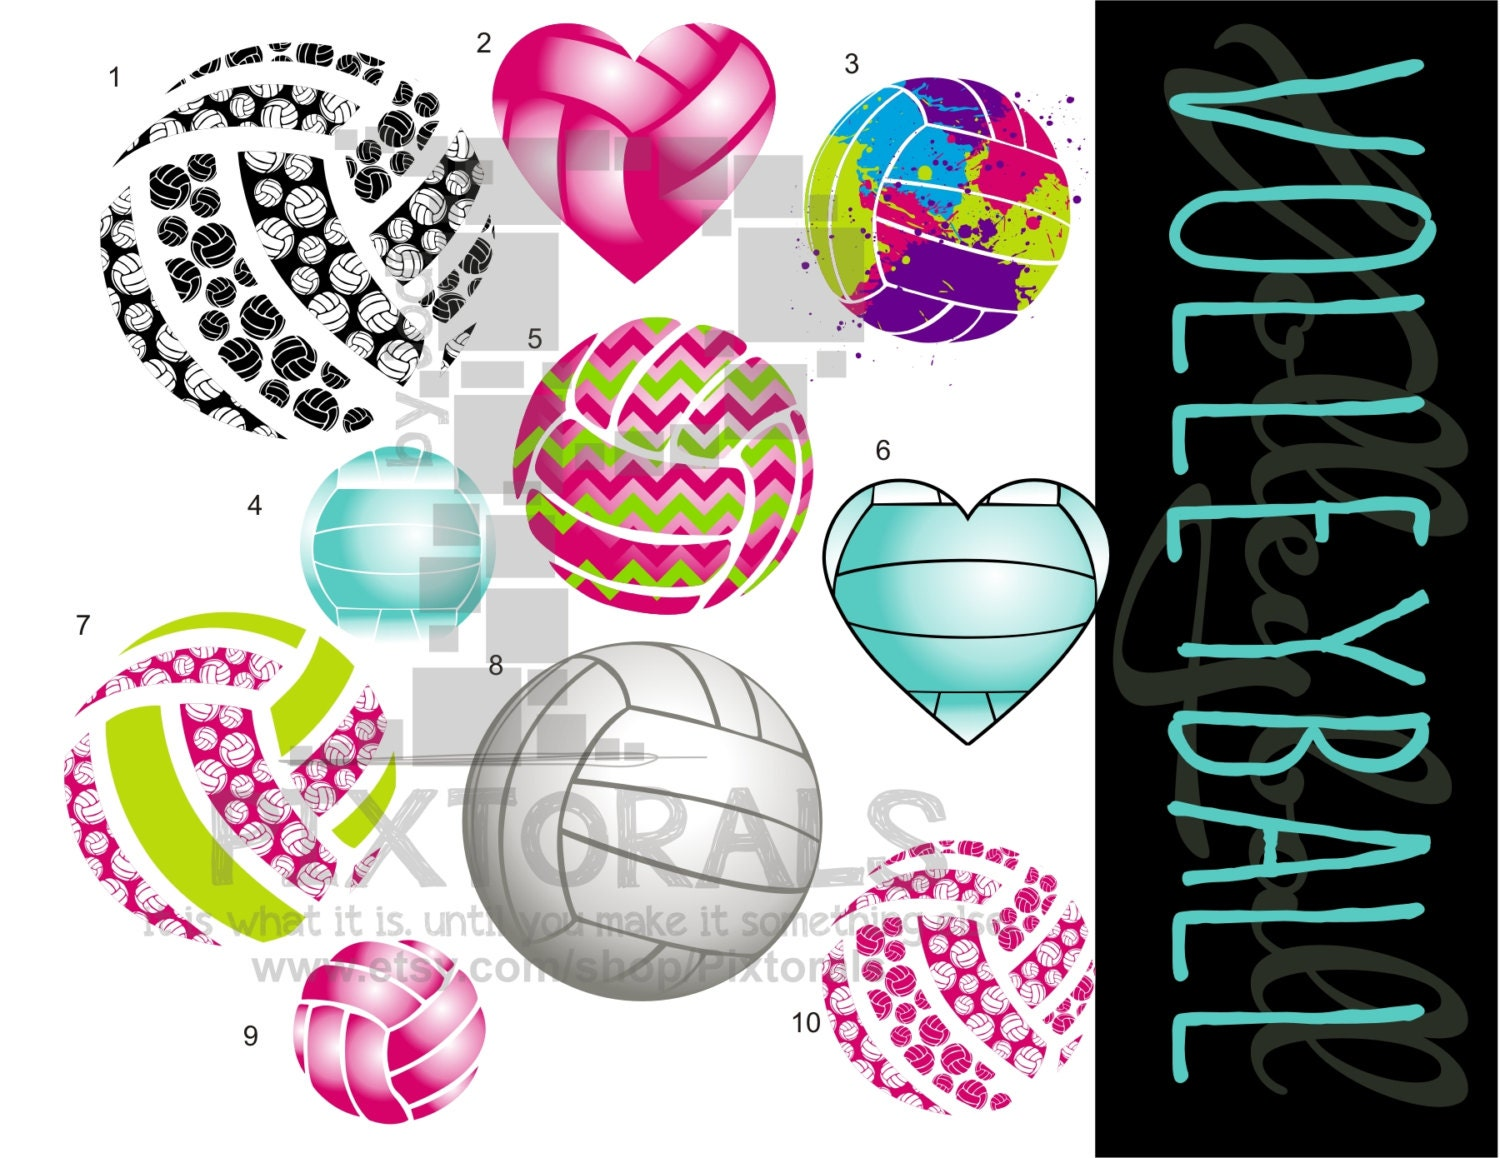 Volleyball Backgrounds: 10 Fun Volleyball Vectors PNG Transparent Backgrounds EPS